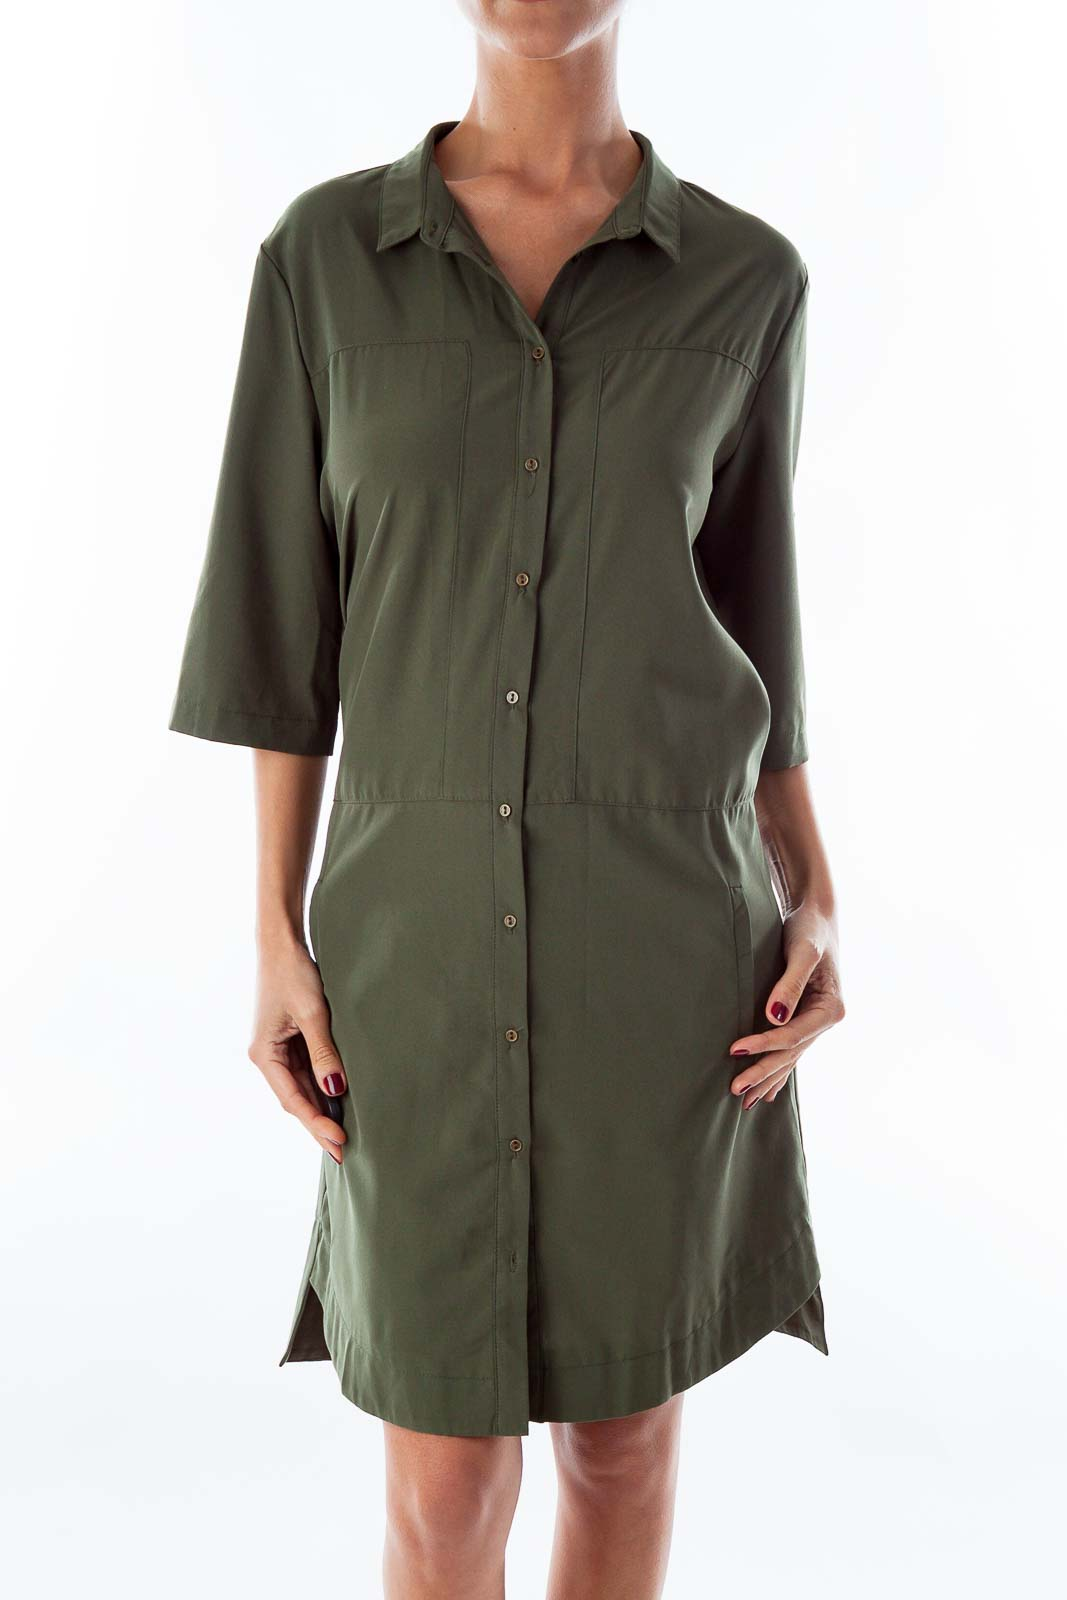 Army Green Button Down Dress Front